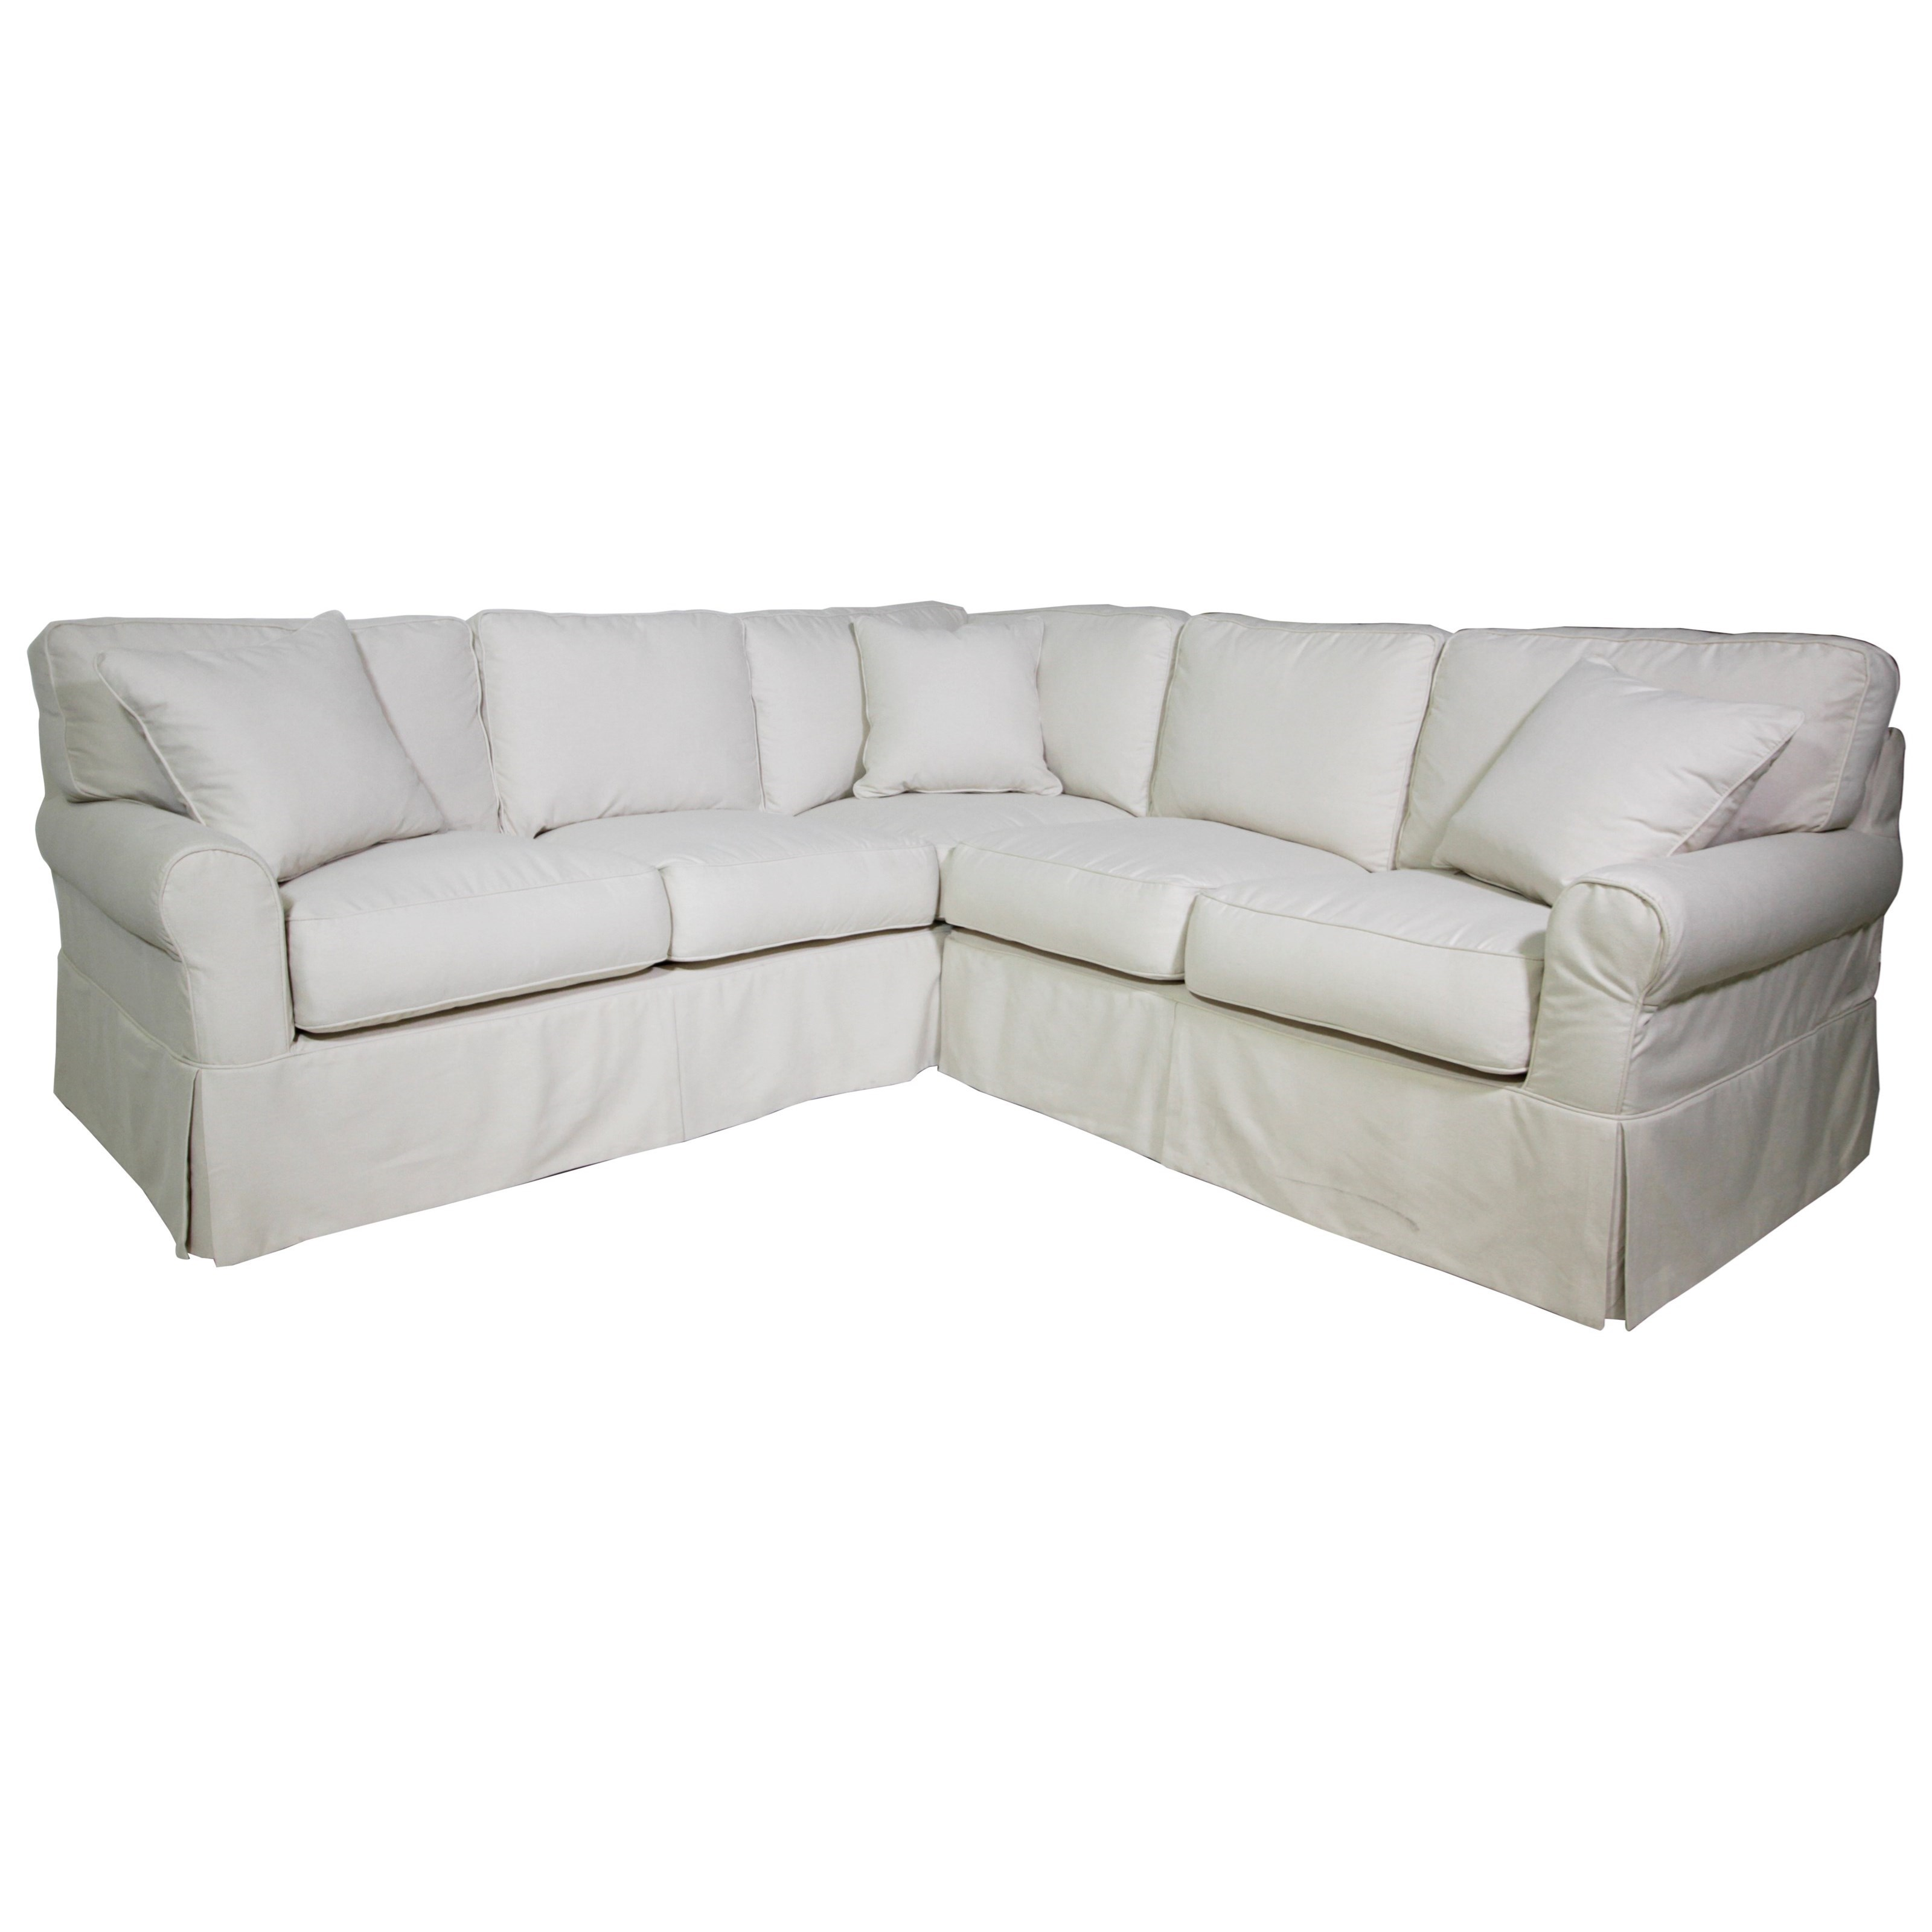 Synergy Home Furnishings Fleming Sectional - Item Number: 1313-61+34 3916-82